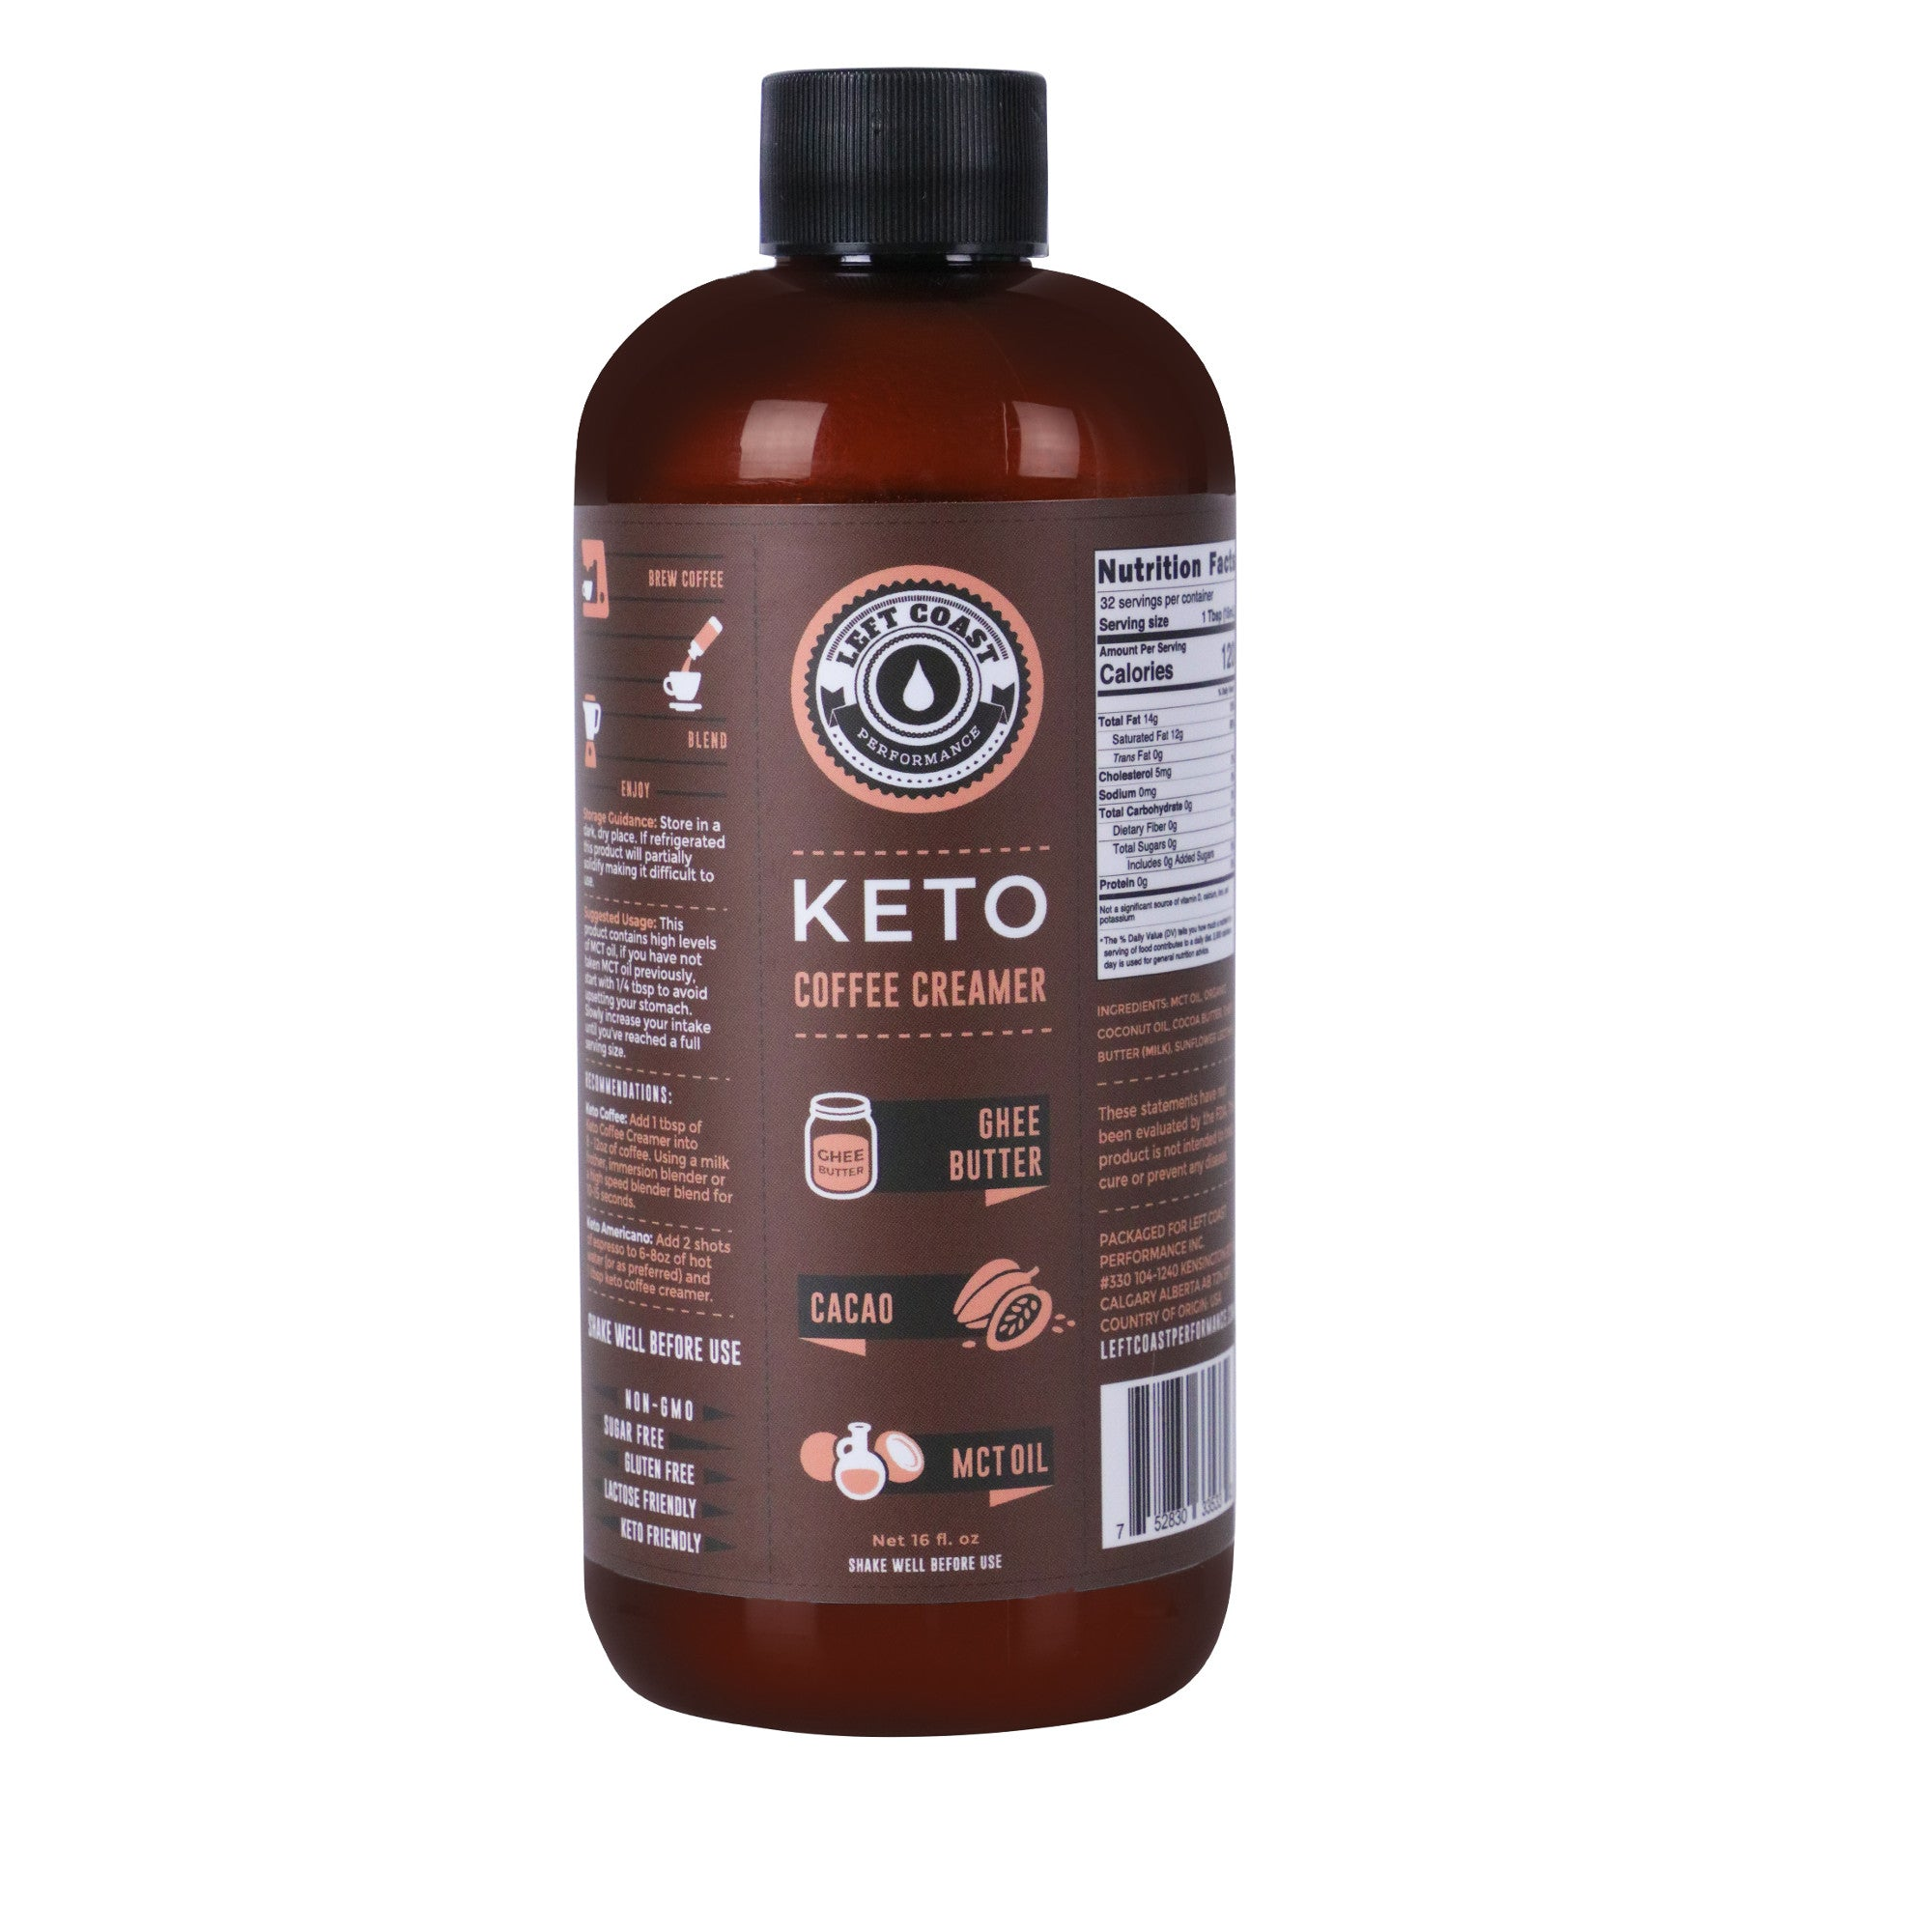 Keto Coffee Creamer with MCT Oil